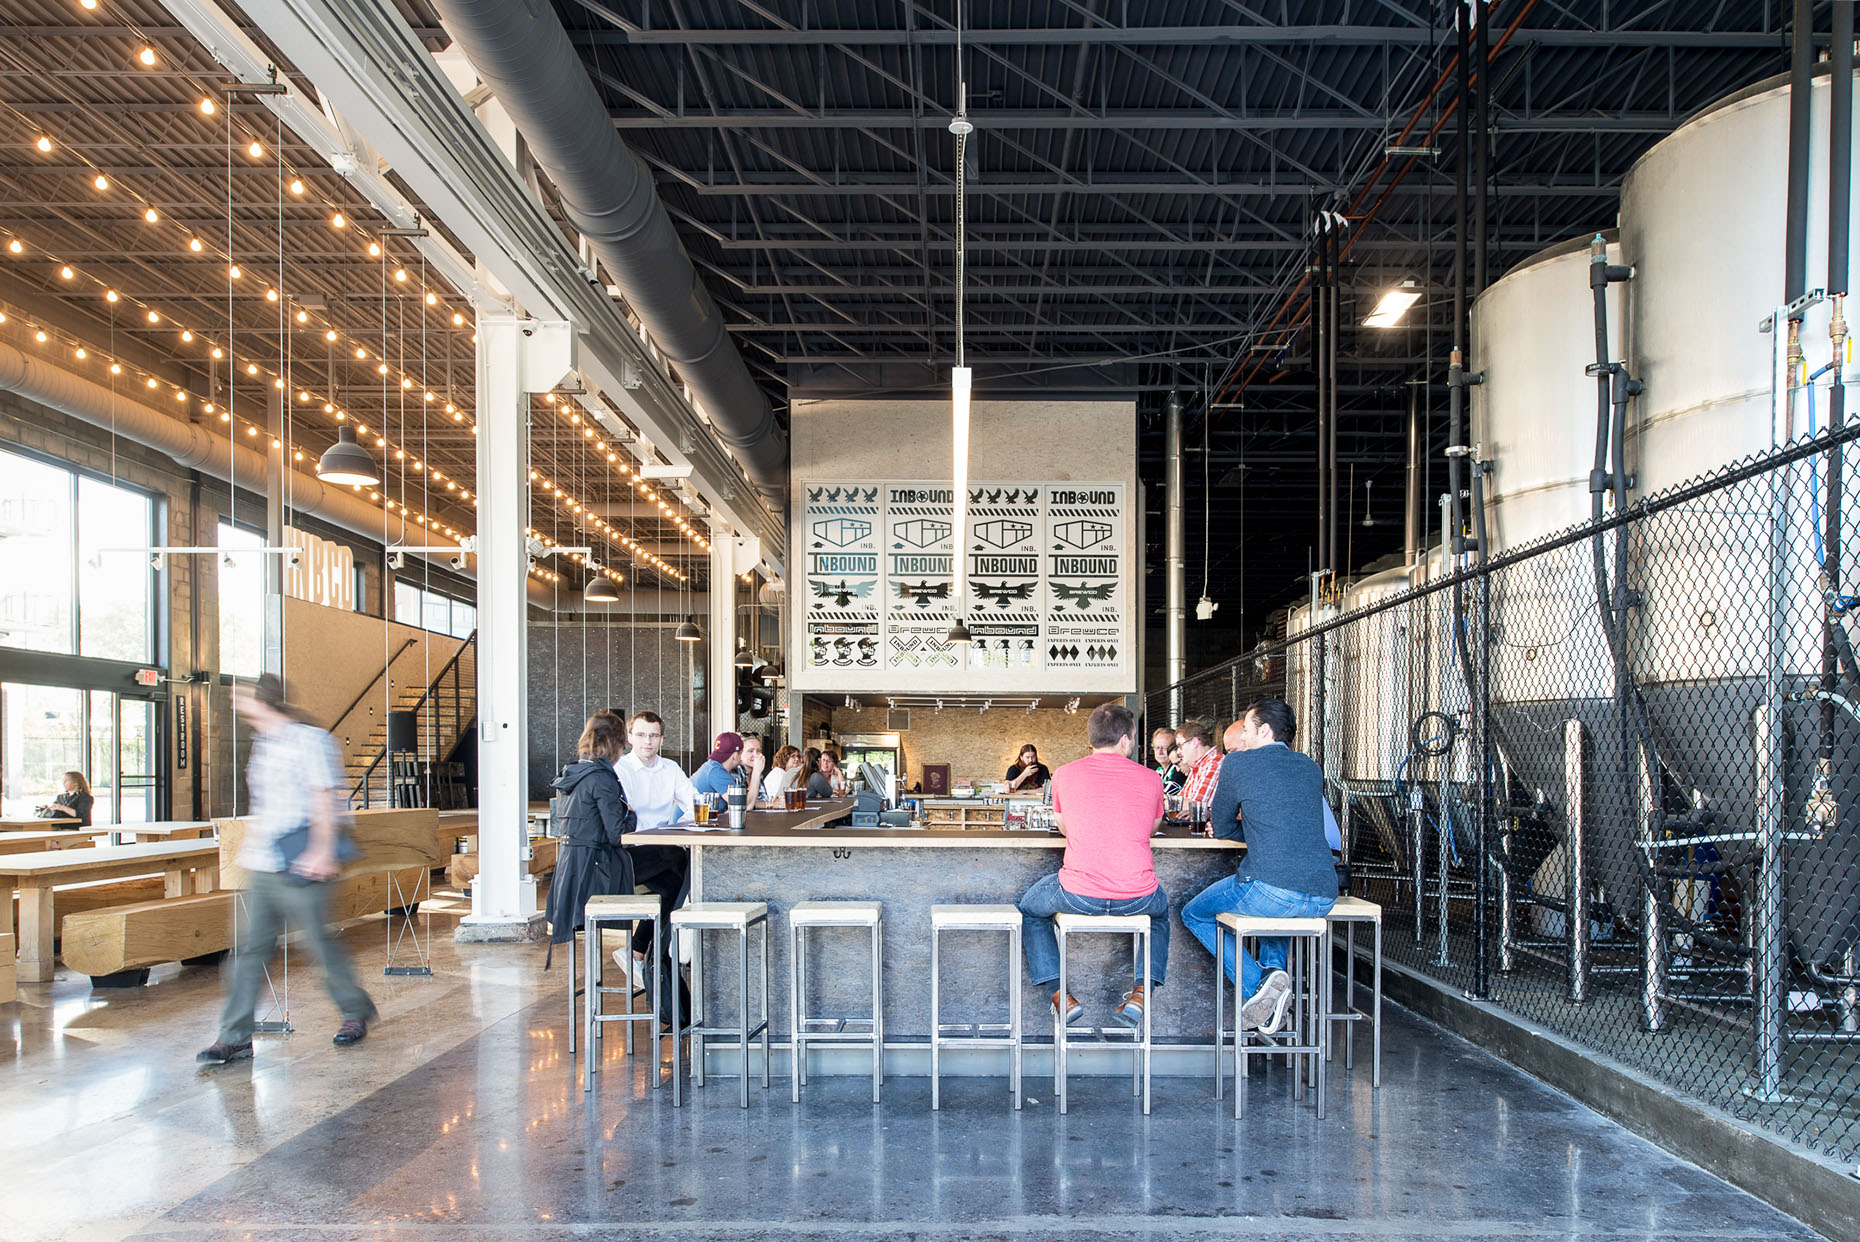 Modern brewery and taproom space in Minneapolis by Christian Dean Architecture.